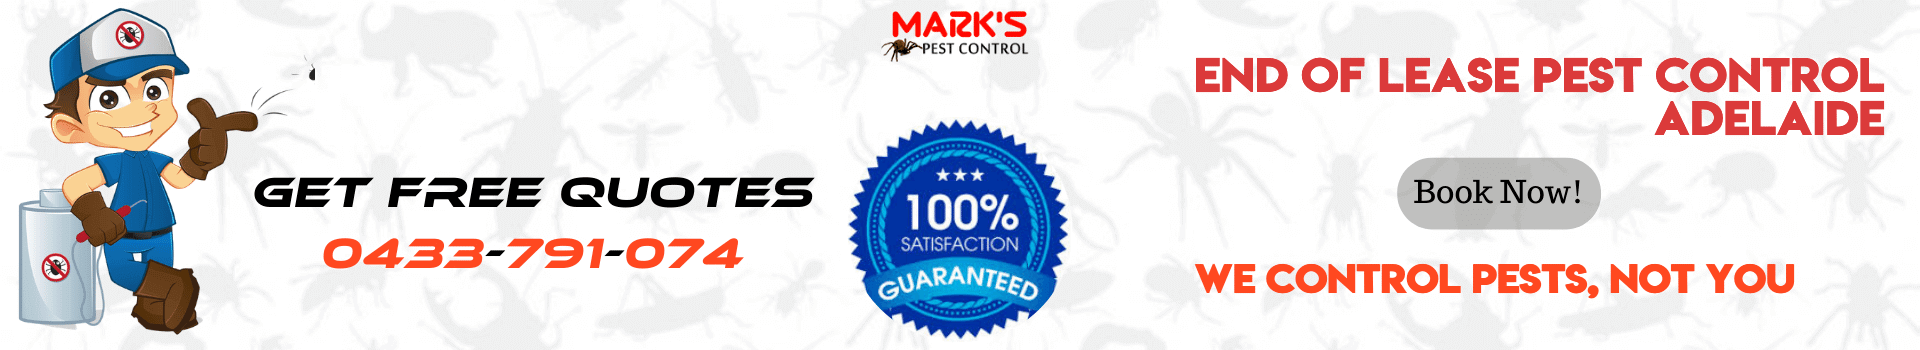 End Of Lease Pest Control Adelaide